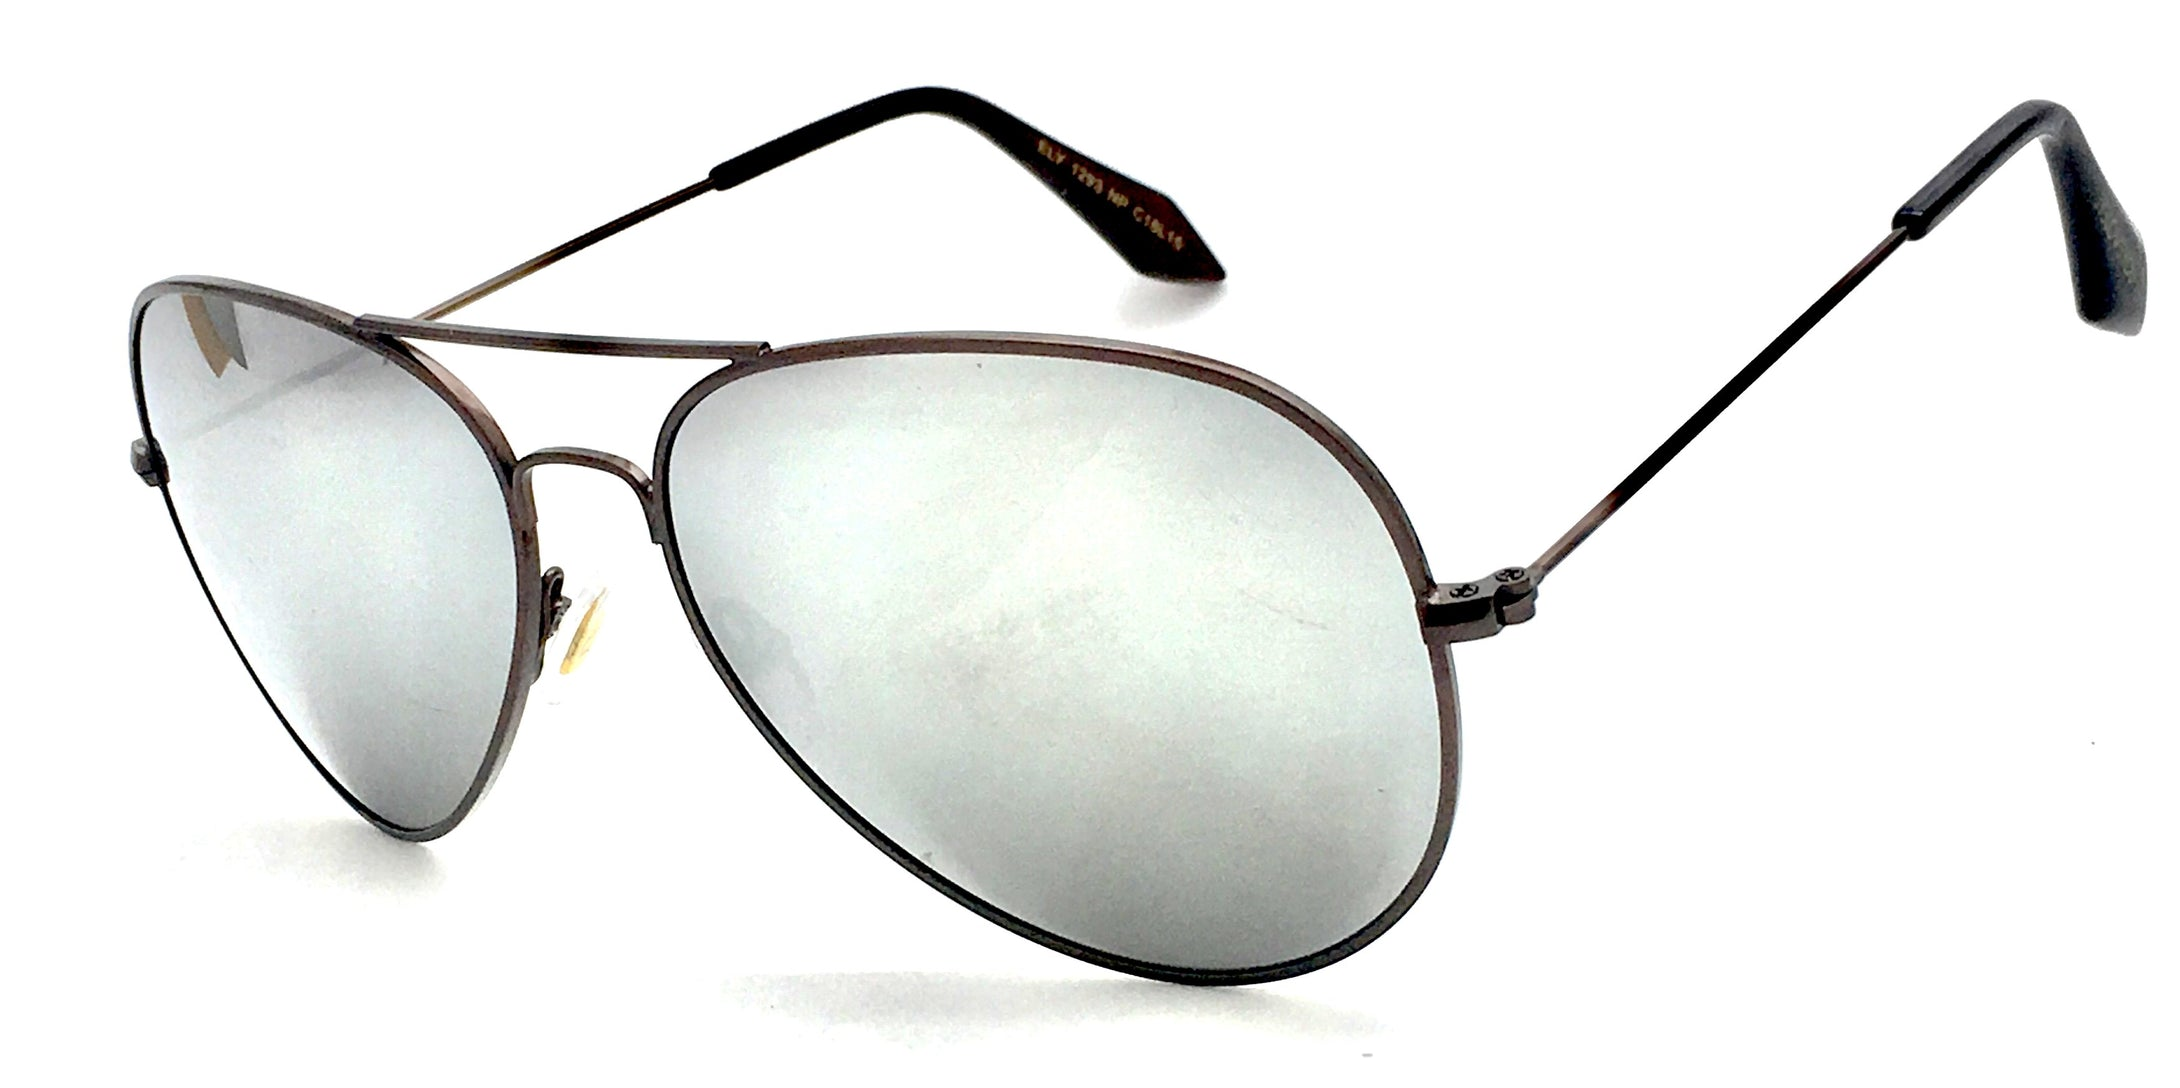 Angrish Brown Silver Mercury Aviator Sunglasses | AG-1293-BRSLM|